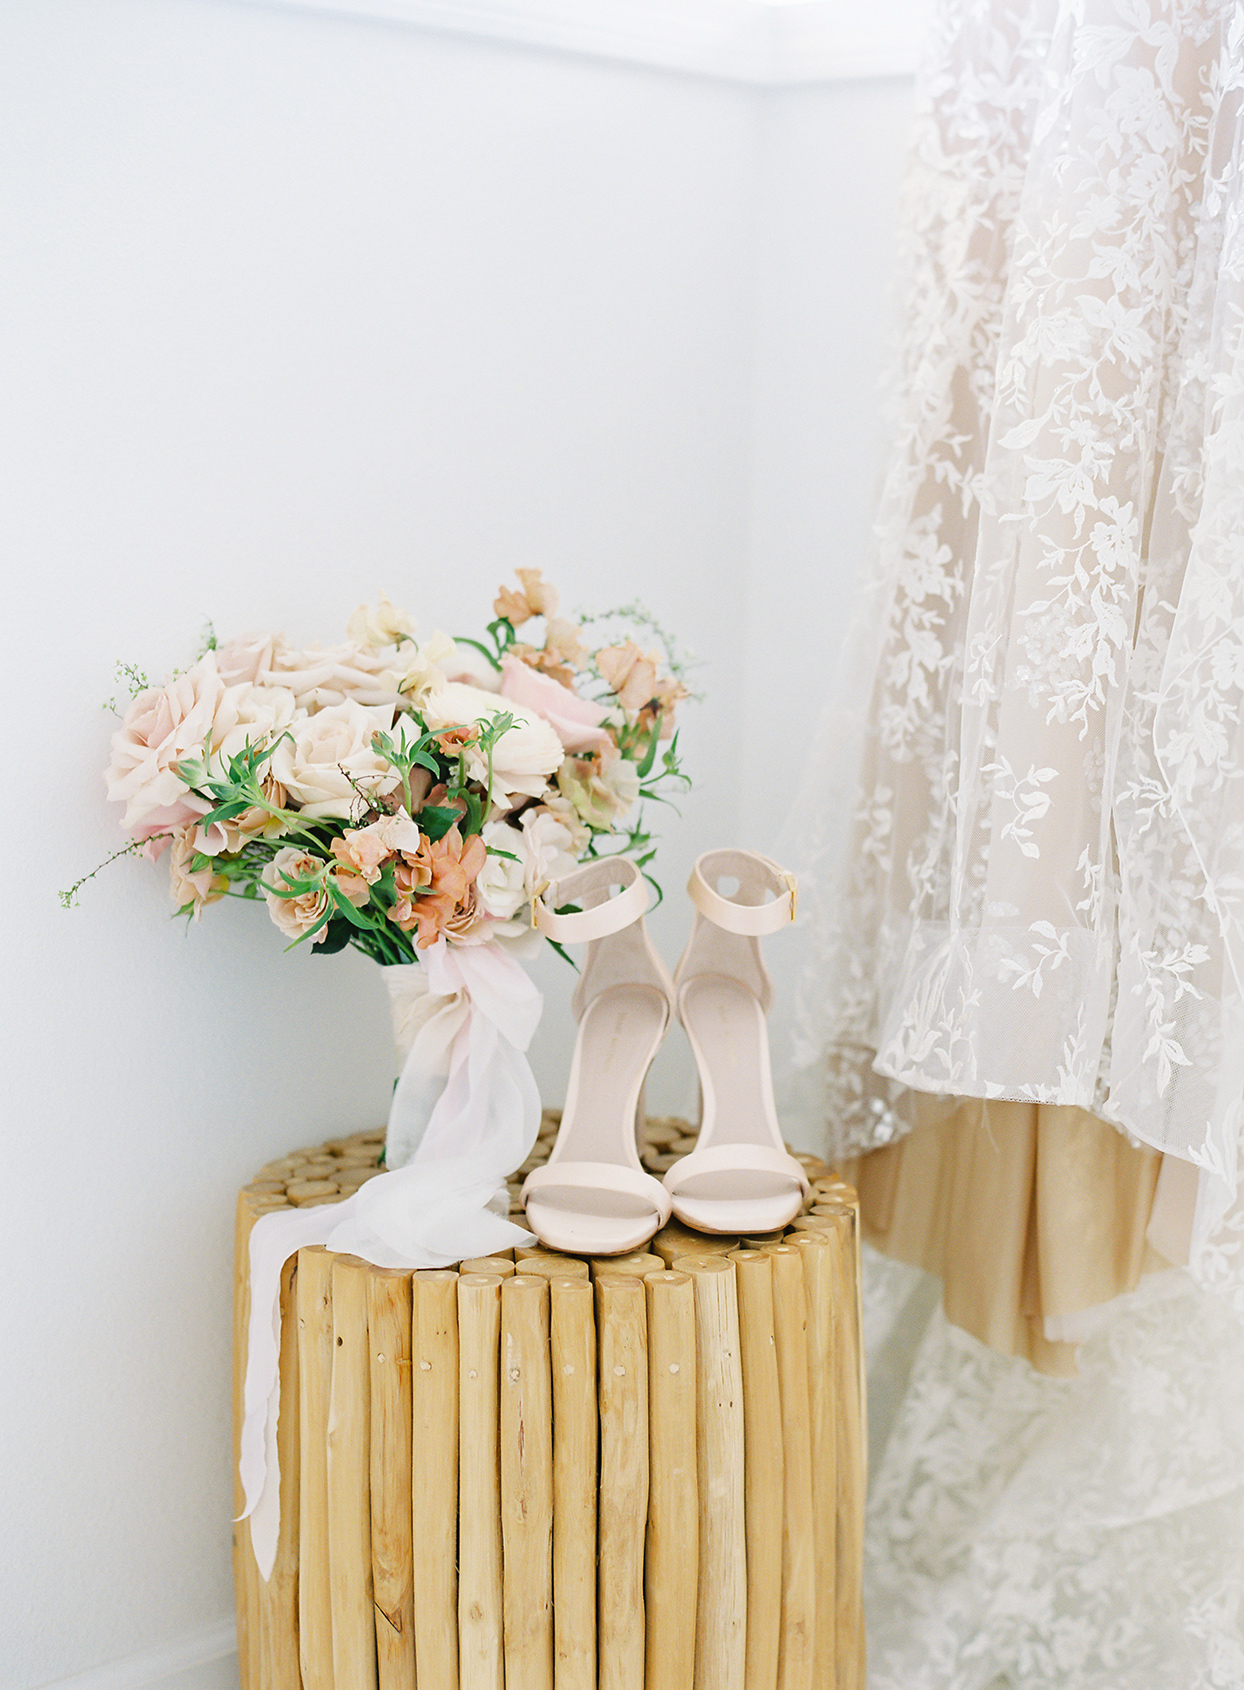 azuki sam wedding bouquet on wooden table with shoes